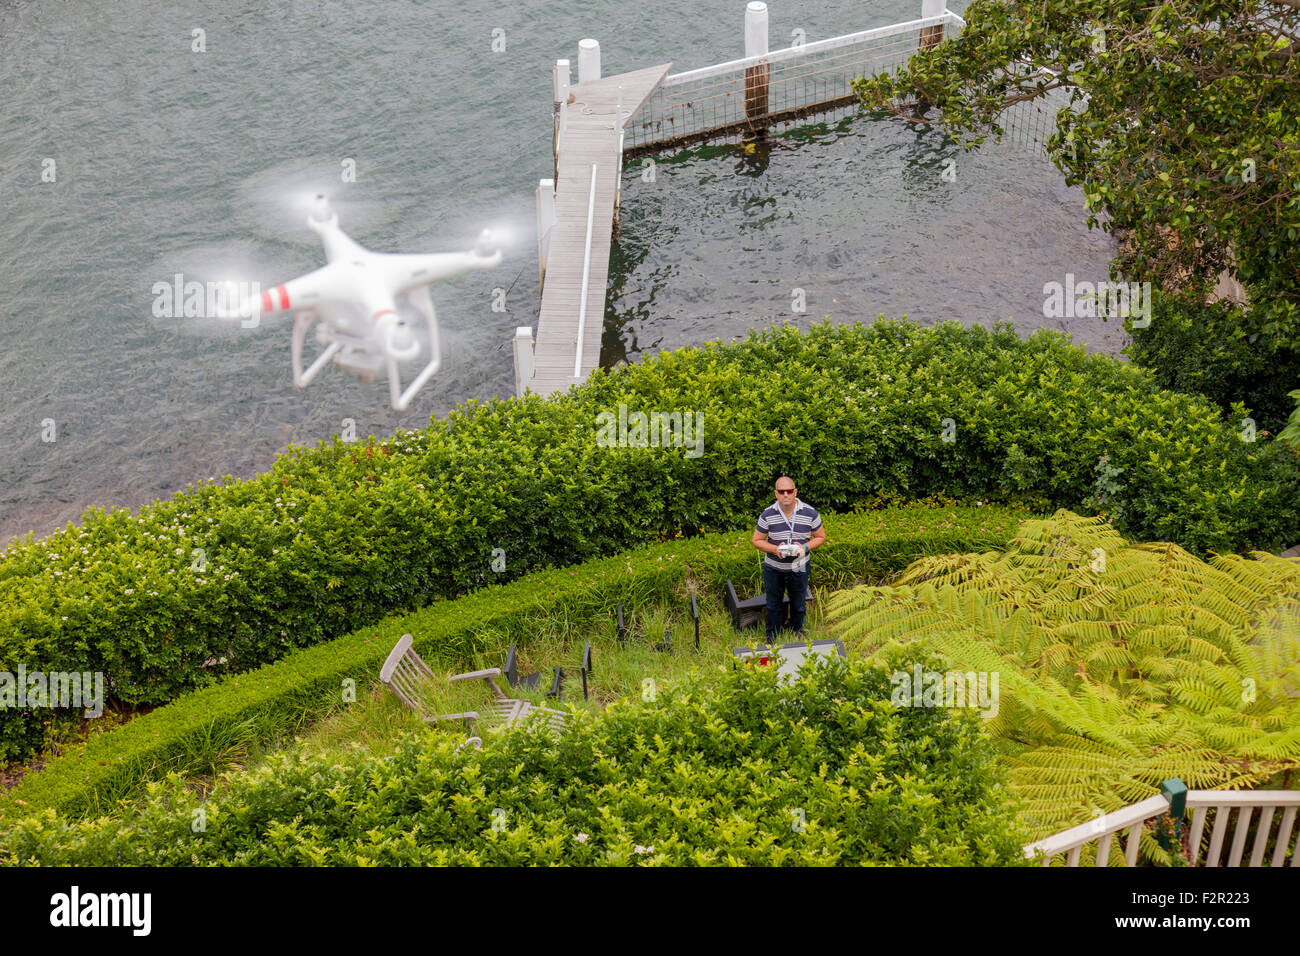 A view from above of a flying drone with a gimbal and camera attached. - Stock Image